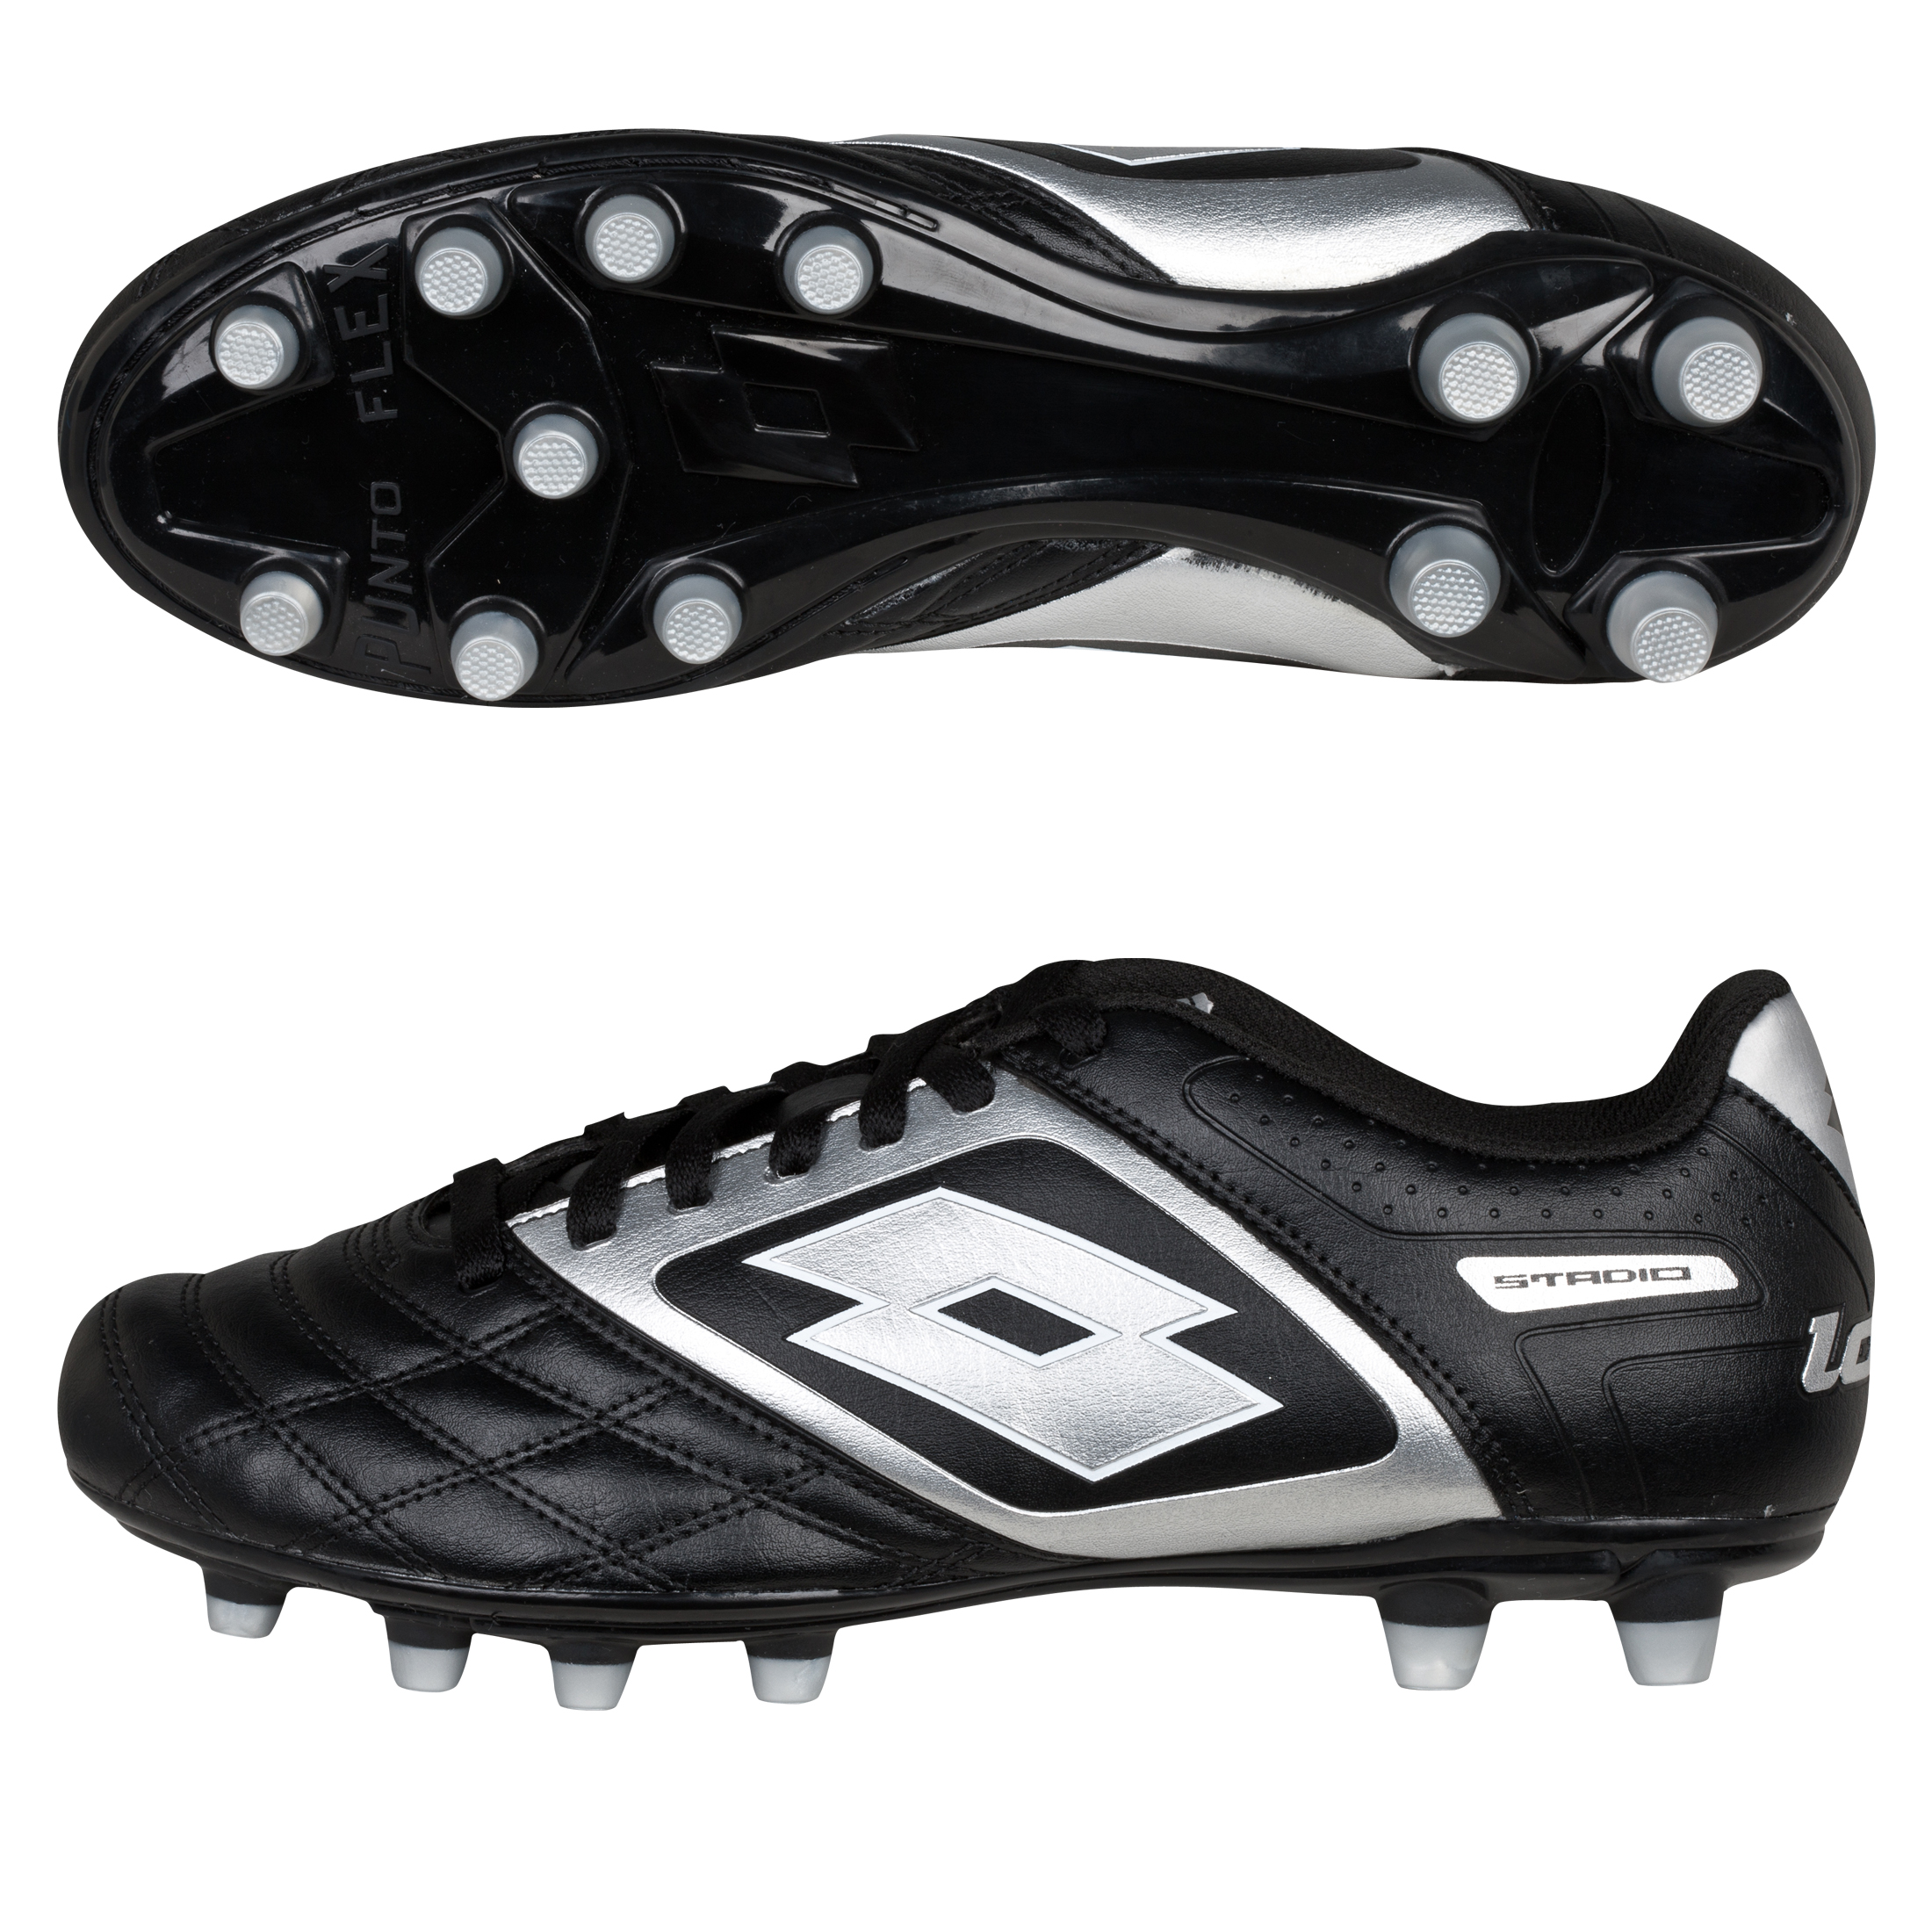 Lotto Stadio Potenza II 700 Firm Ground Football Boots - Black/Silver